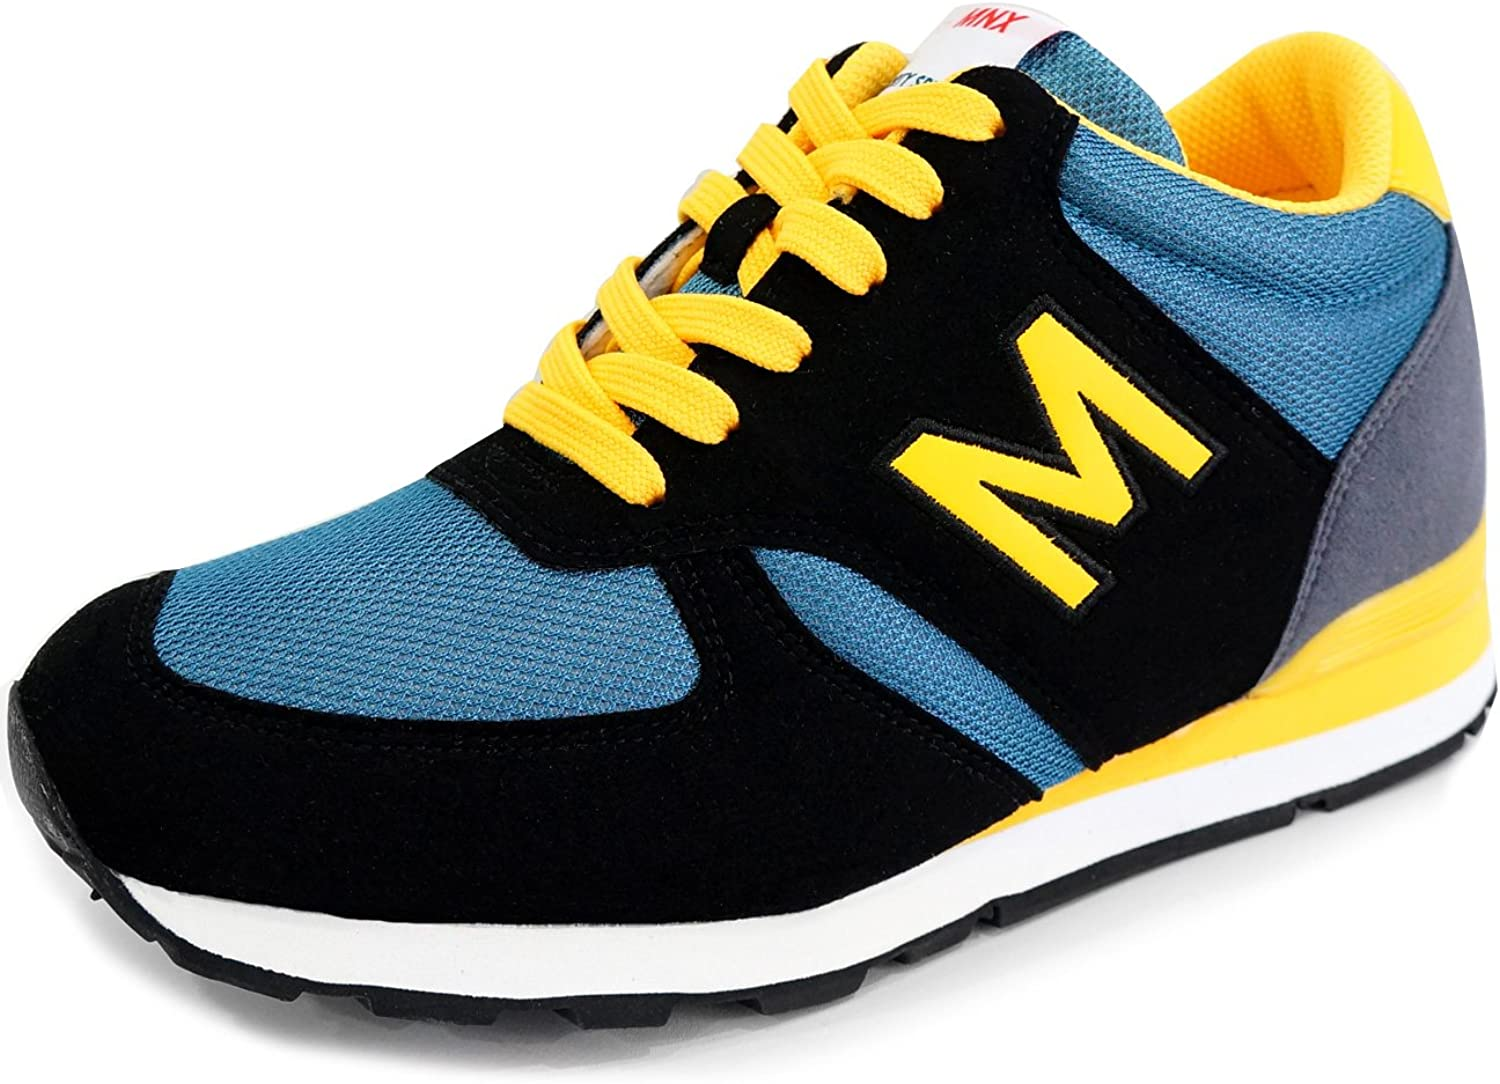 MNX15 Women's Elevator shoes Height Increase 2.7  Envy bluee